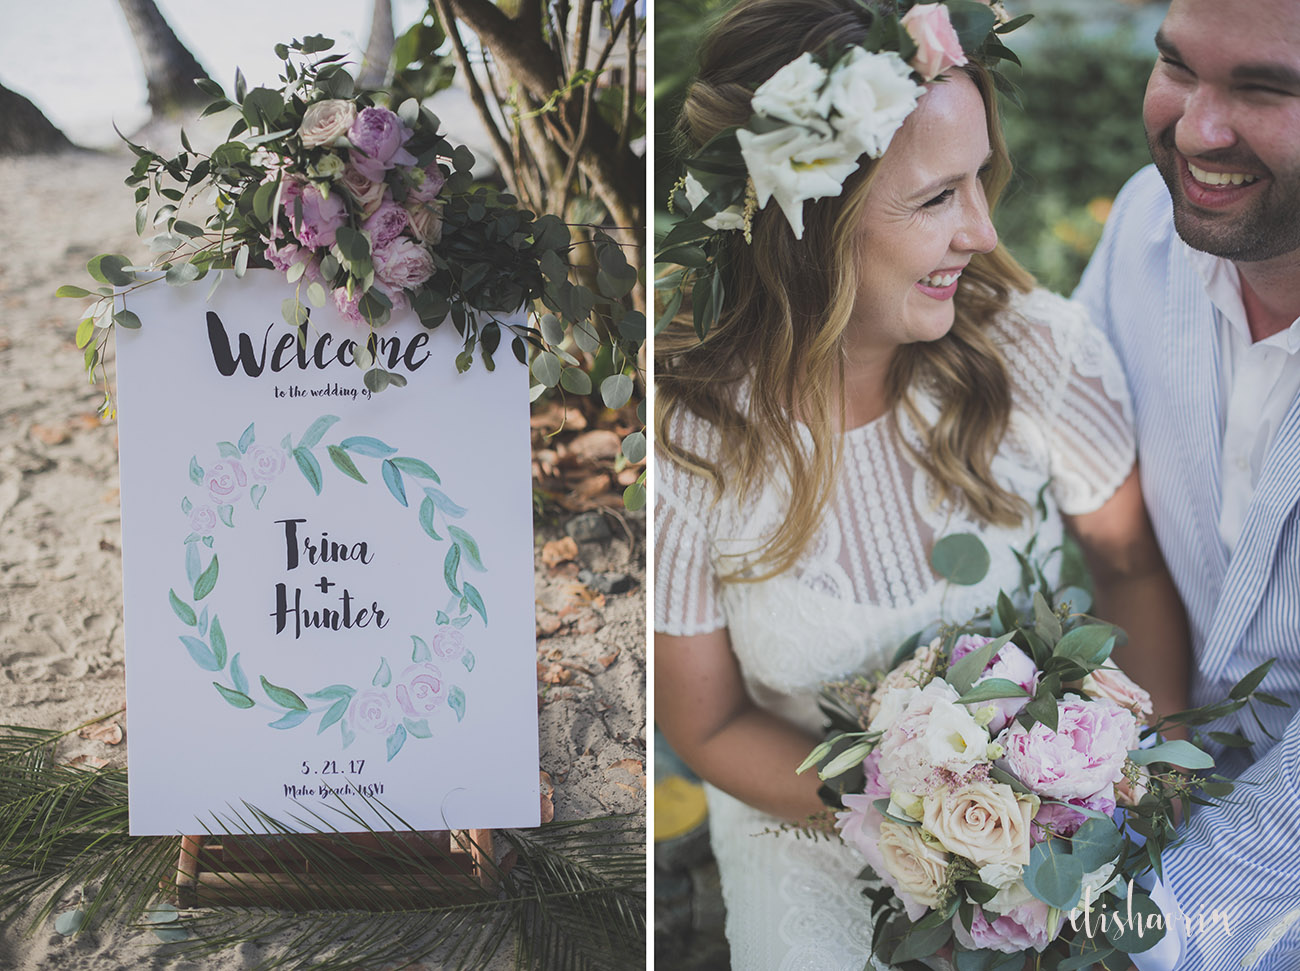 bride-and-groom-wedding-sign-at-maho-beach-taken-in-st-john-by-elisha-orin-photography